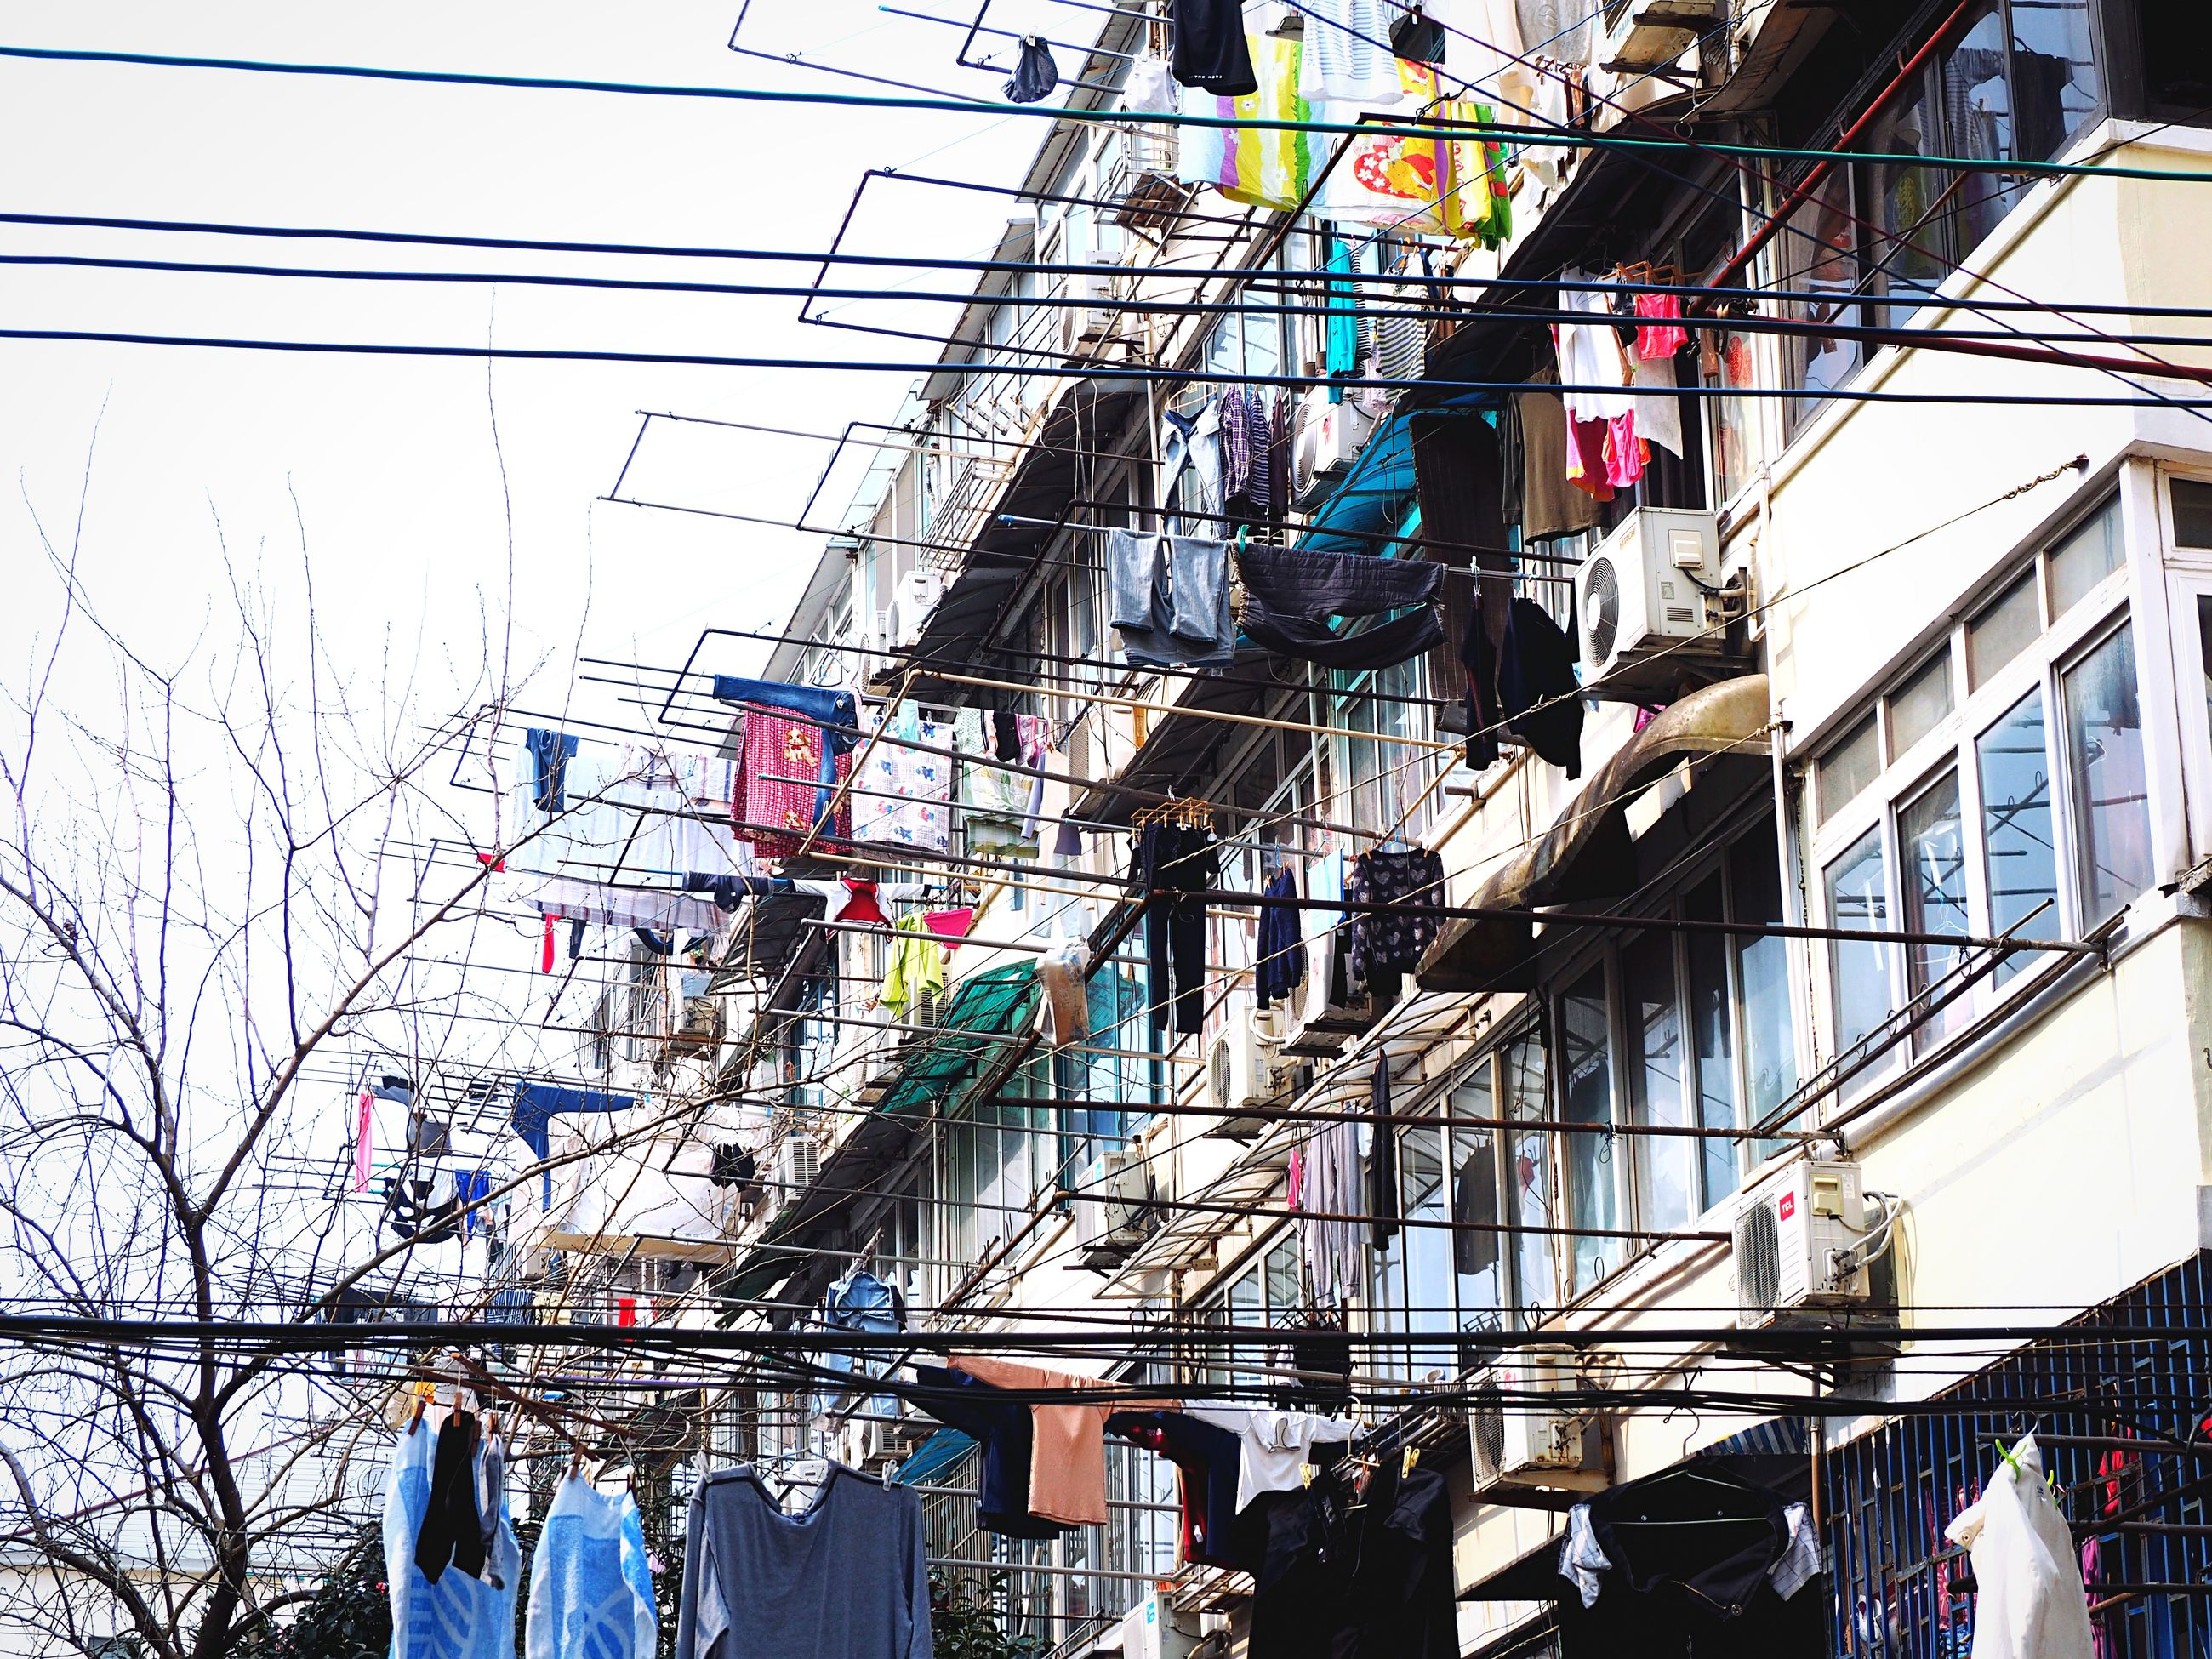 building exterior, built structure, architecture, cable, low angle view, power line, hanging, day, power supply, electricity, building, residential structure, electricity pylon, city, outdoors, residential building, no people, clothesline, wire, window